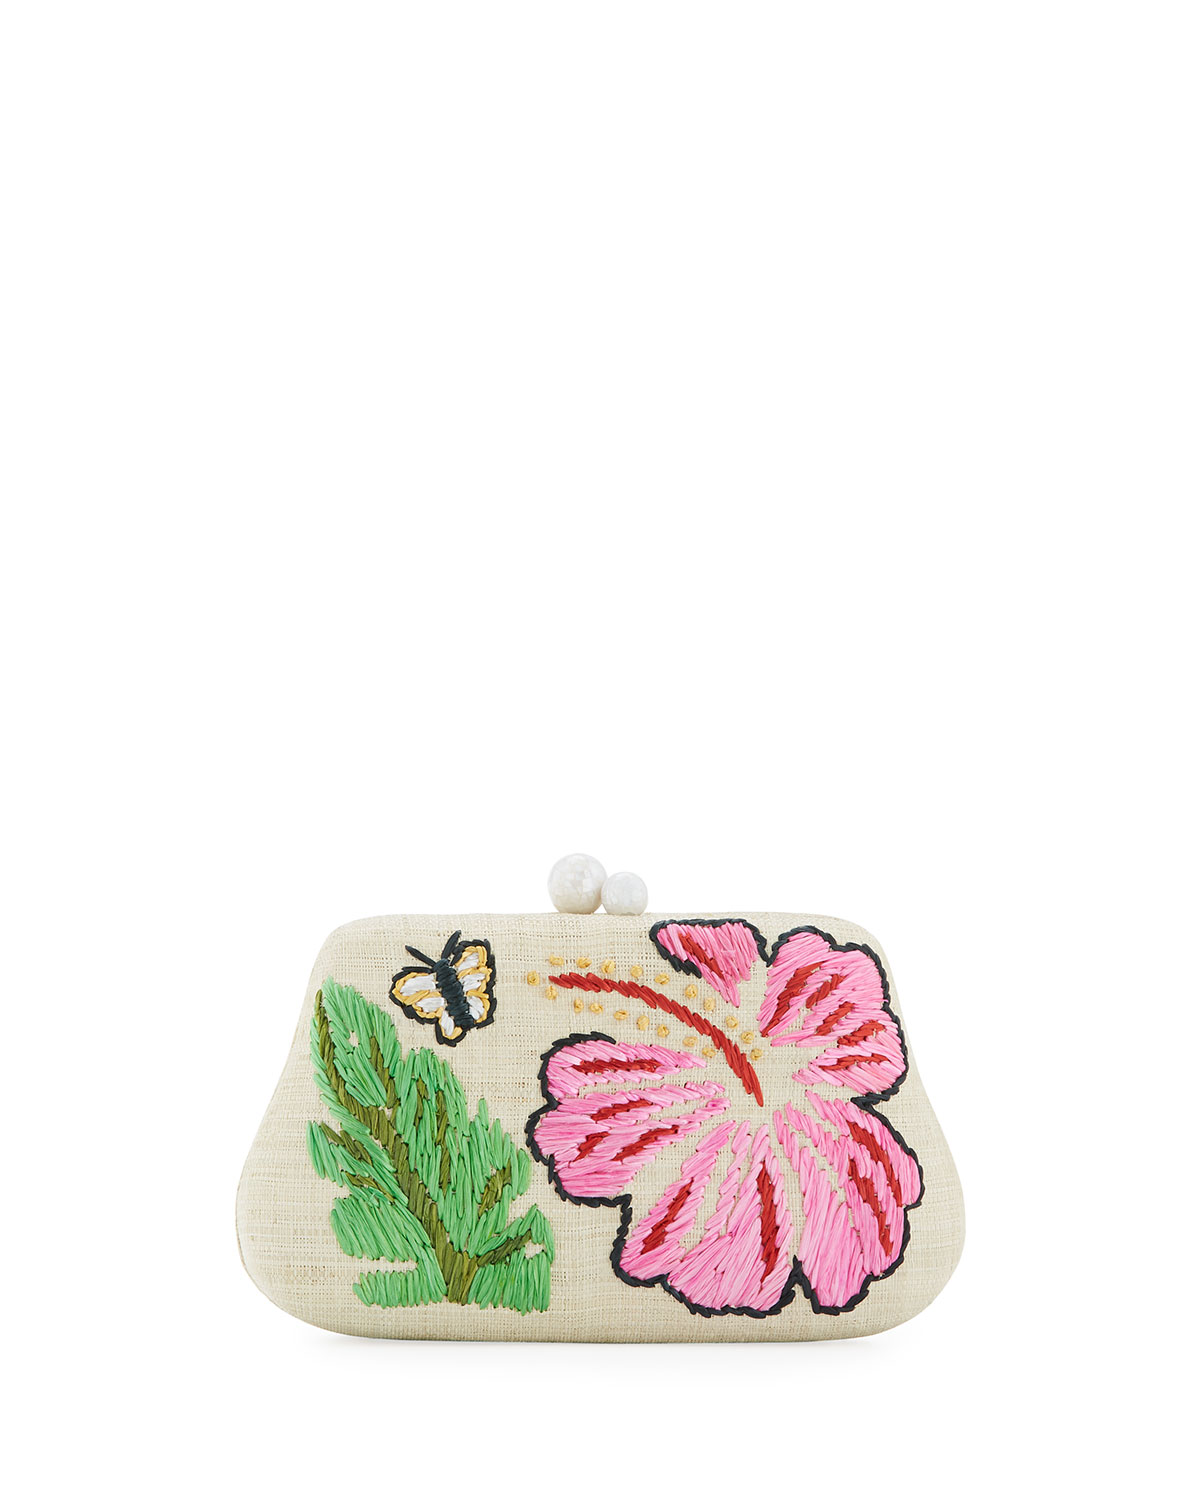 Rosie Small Straw Clutch Bag with Hibiscus & Butterfly